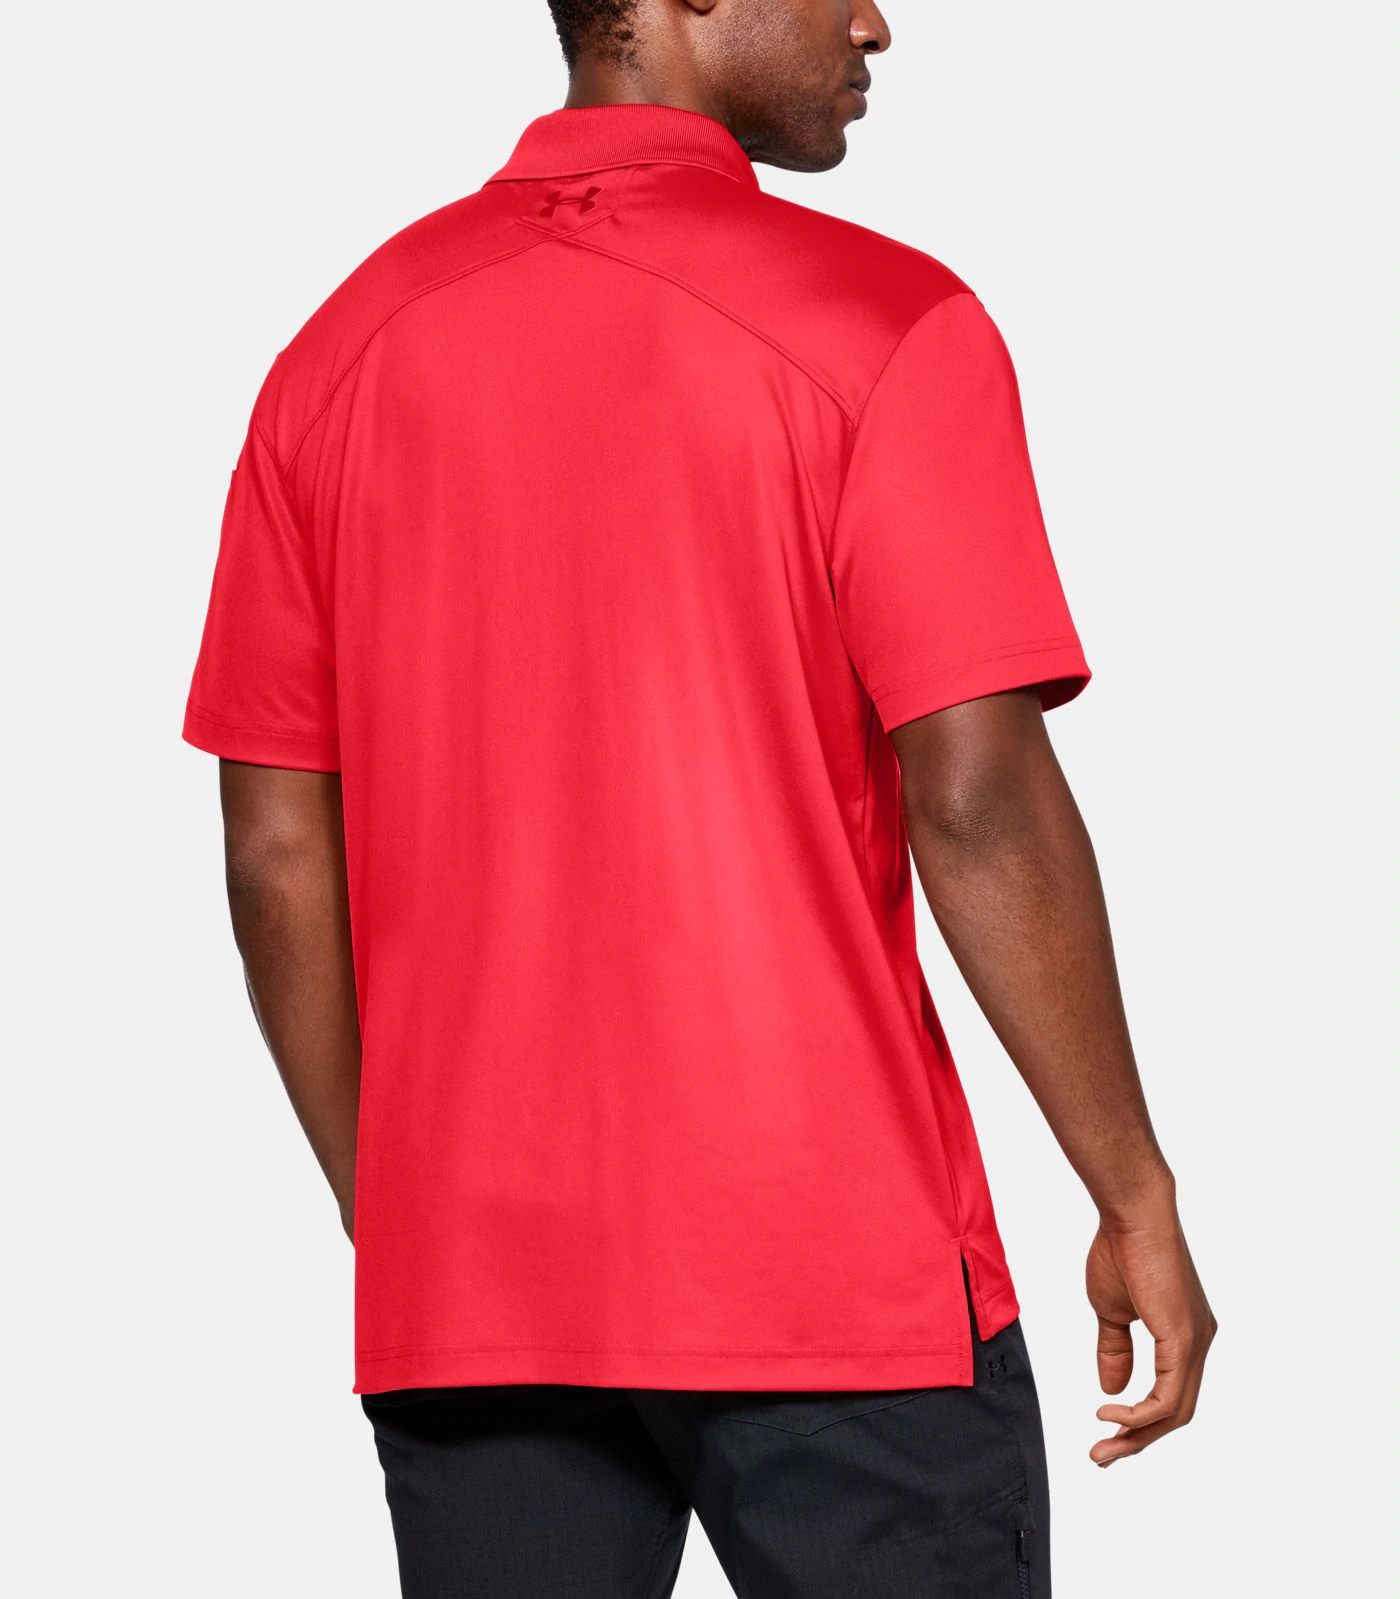 MENS_POLO_TacPerformance-SS_UAR1279759600_02